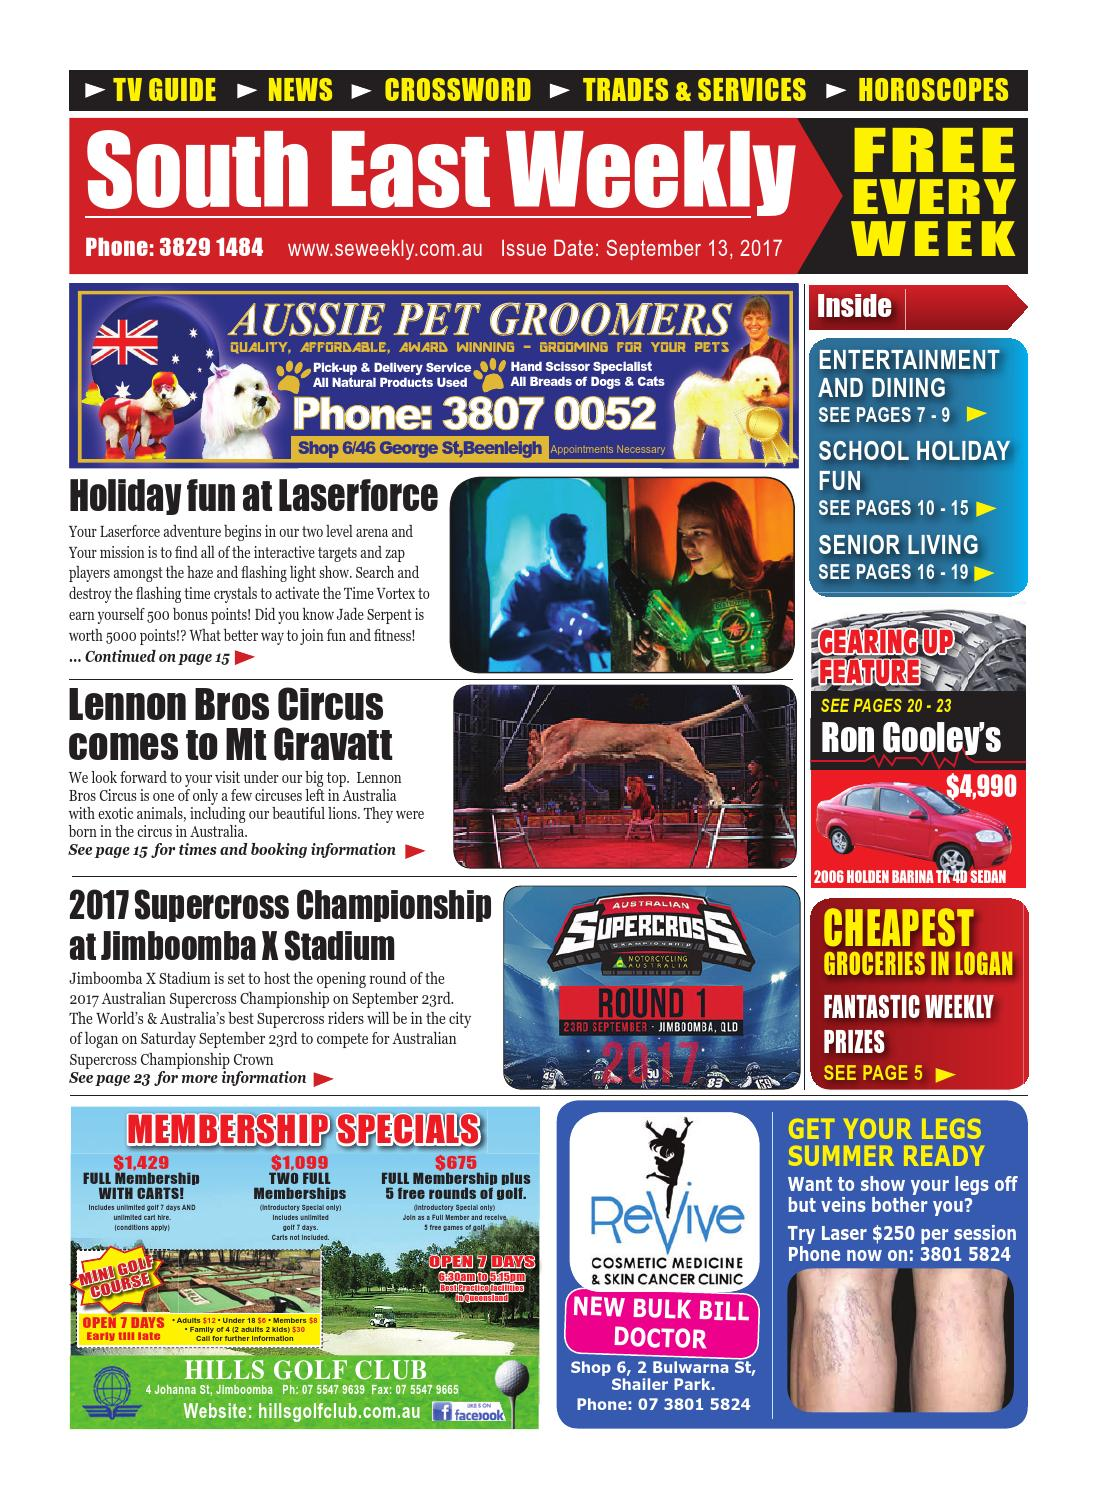 South East Weekly Magazine - September 13, 2017 by South